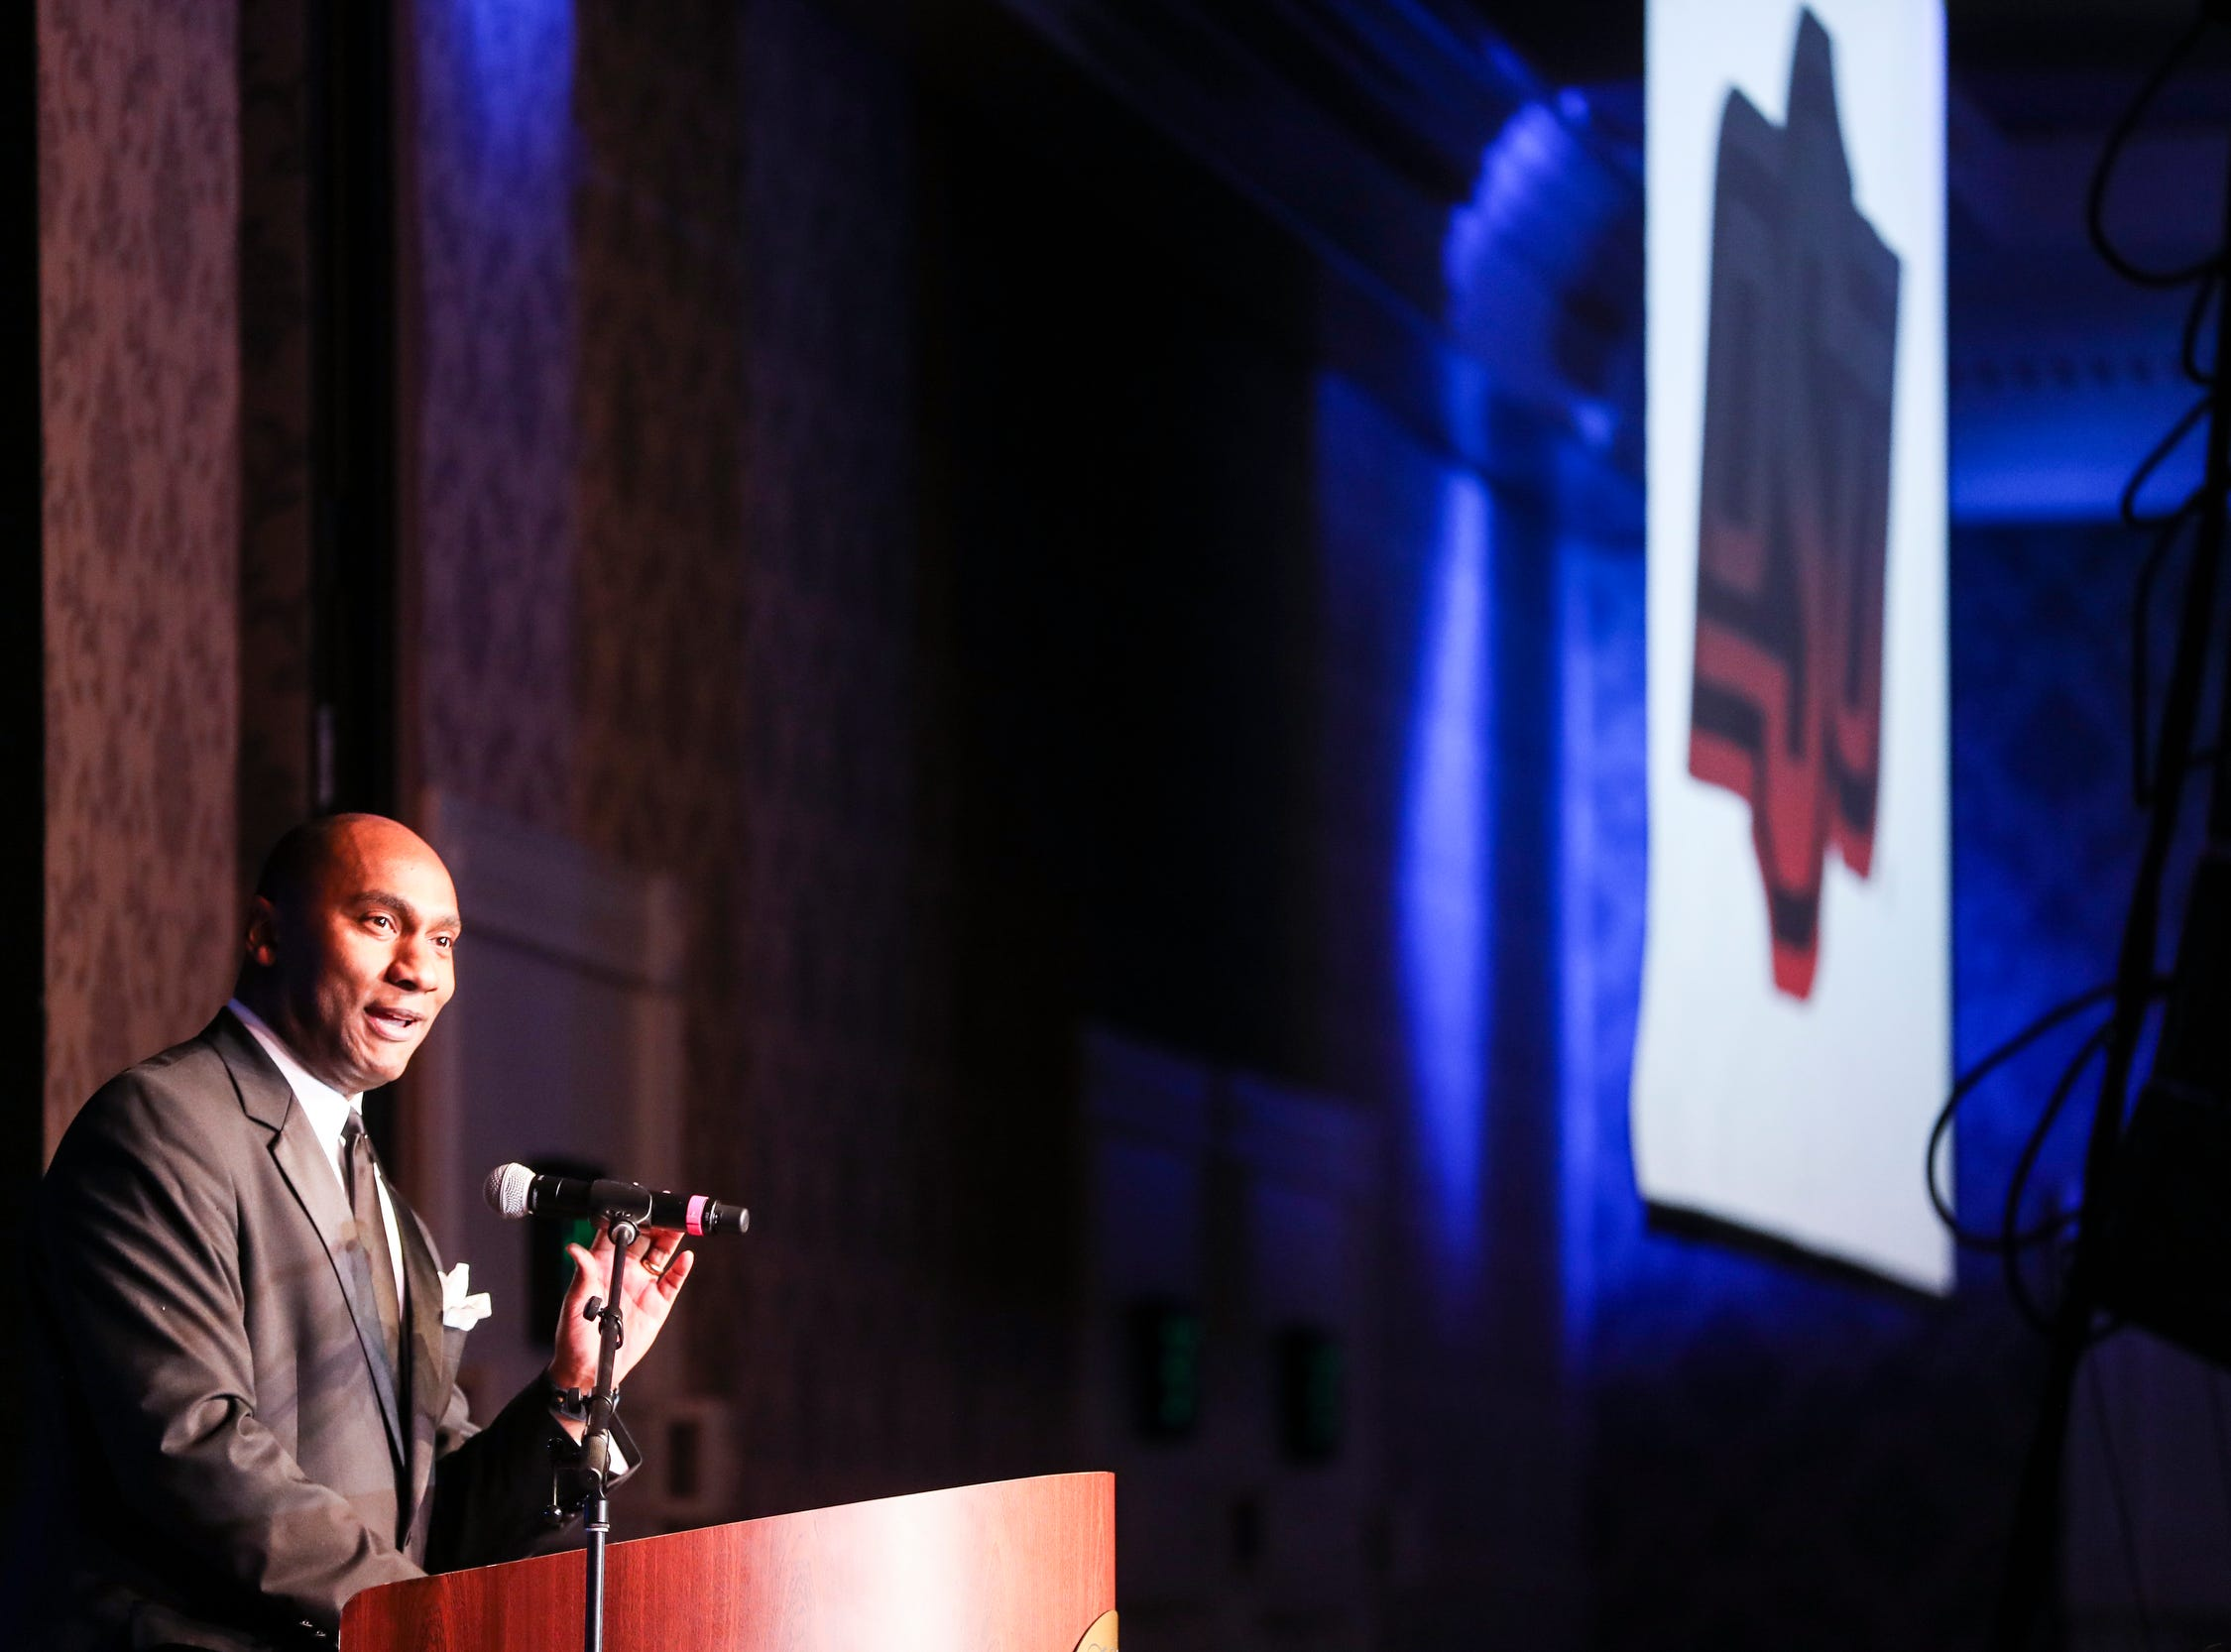 December 30 2018 - Scenes from Sunday evening's AutoZone Liberty Bowl President's Gala. On Monday the Oklahoma State Cowboys and Missouri Tigers play in the 2018 AutoZone Liberty Bowl.